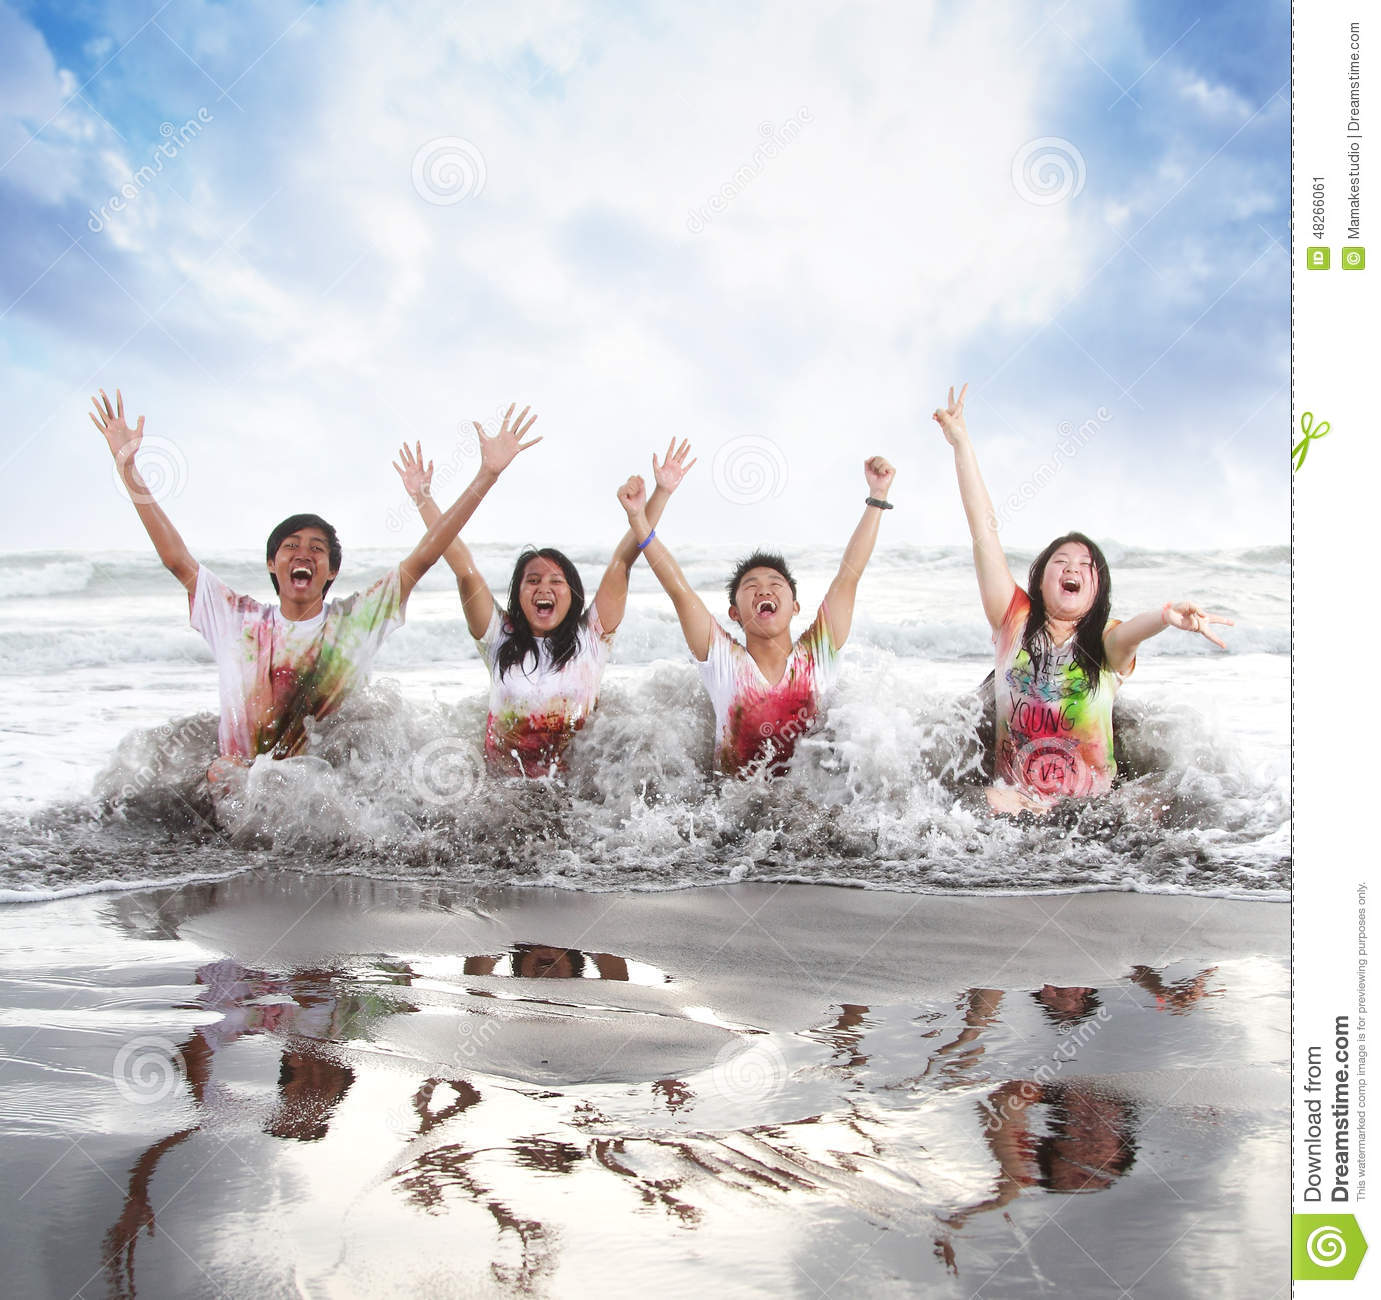 Happy young people enjoying a beach in summer with slow motion and blurry concept